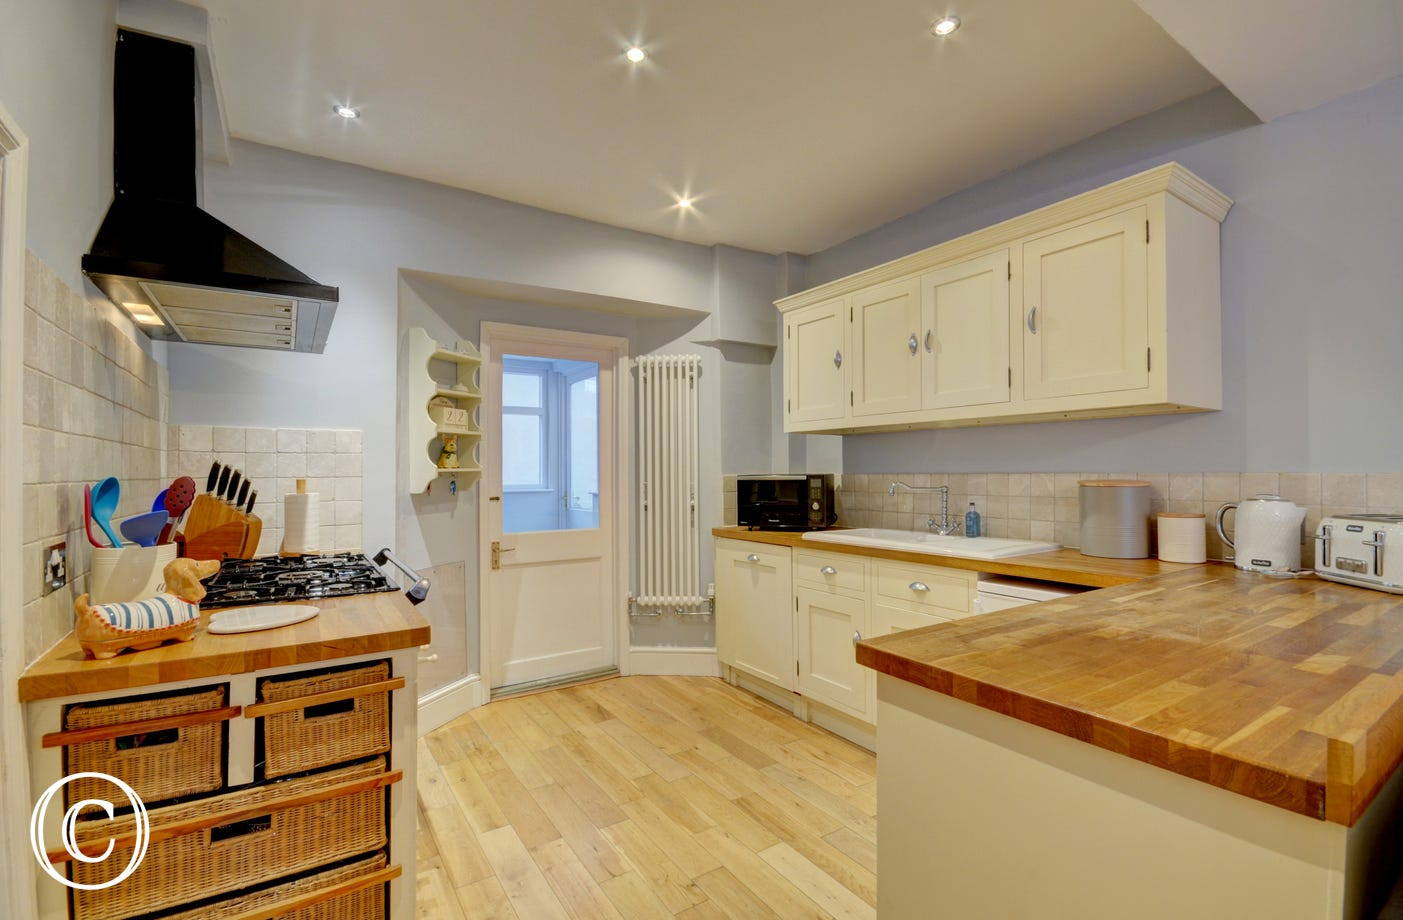 Kitchen area complete with Rangemaster stove and wooden work surfaces